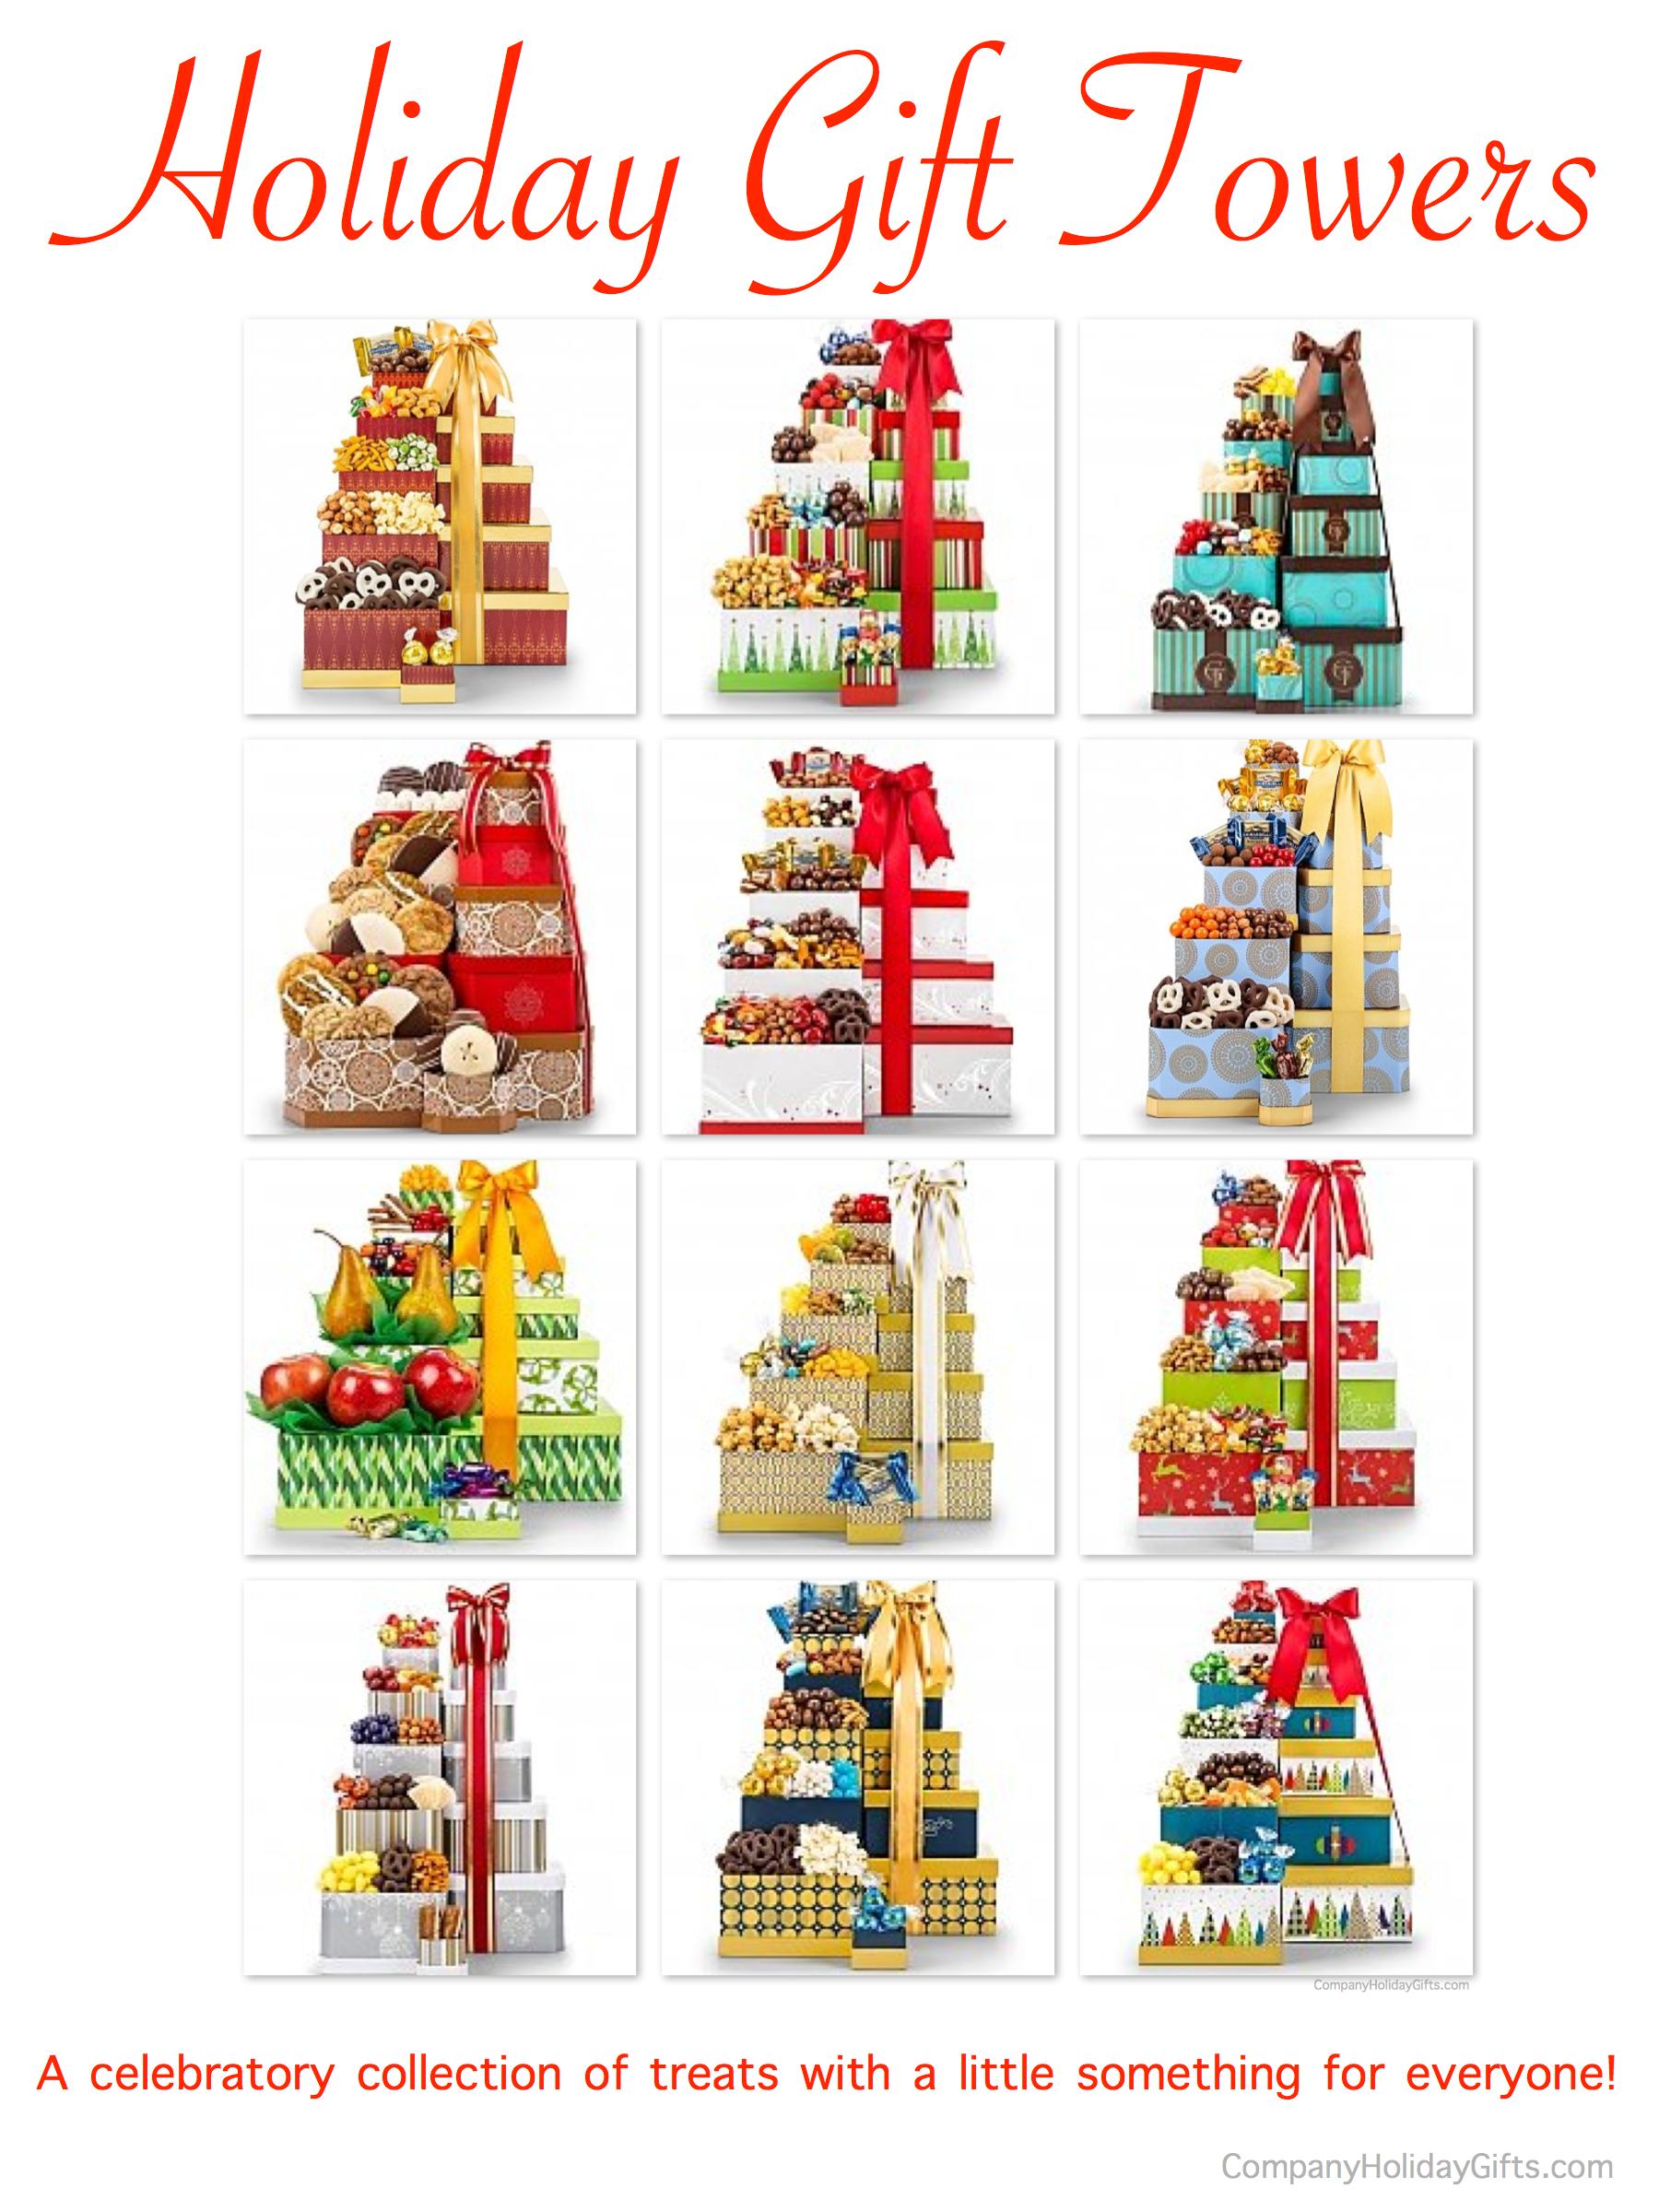 Holiday Gift Towers, 20 Best Realtor Holiday Gift Ideas Under $100.00